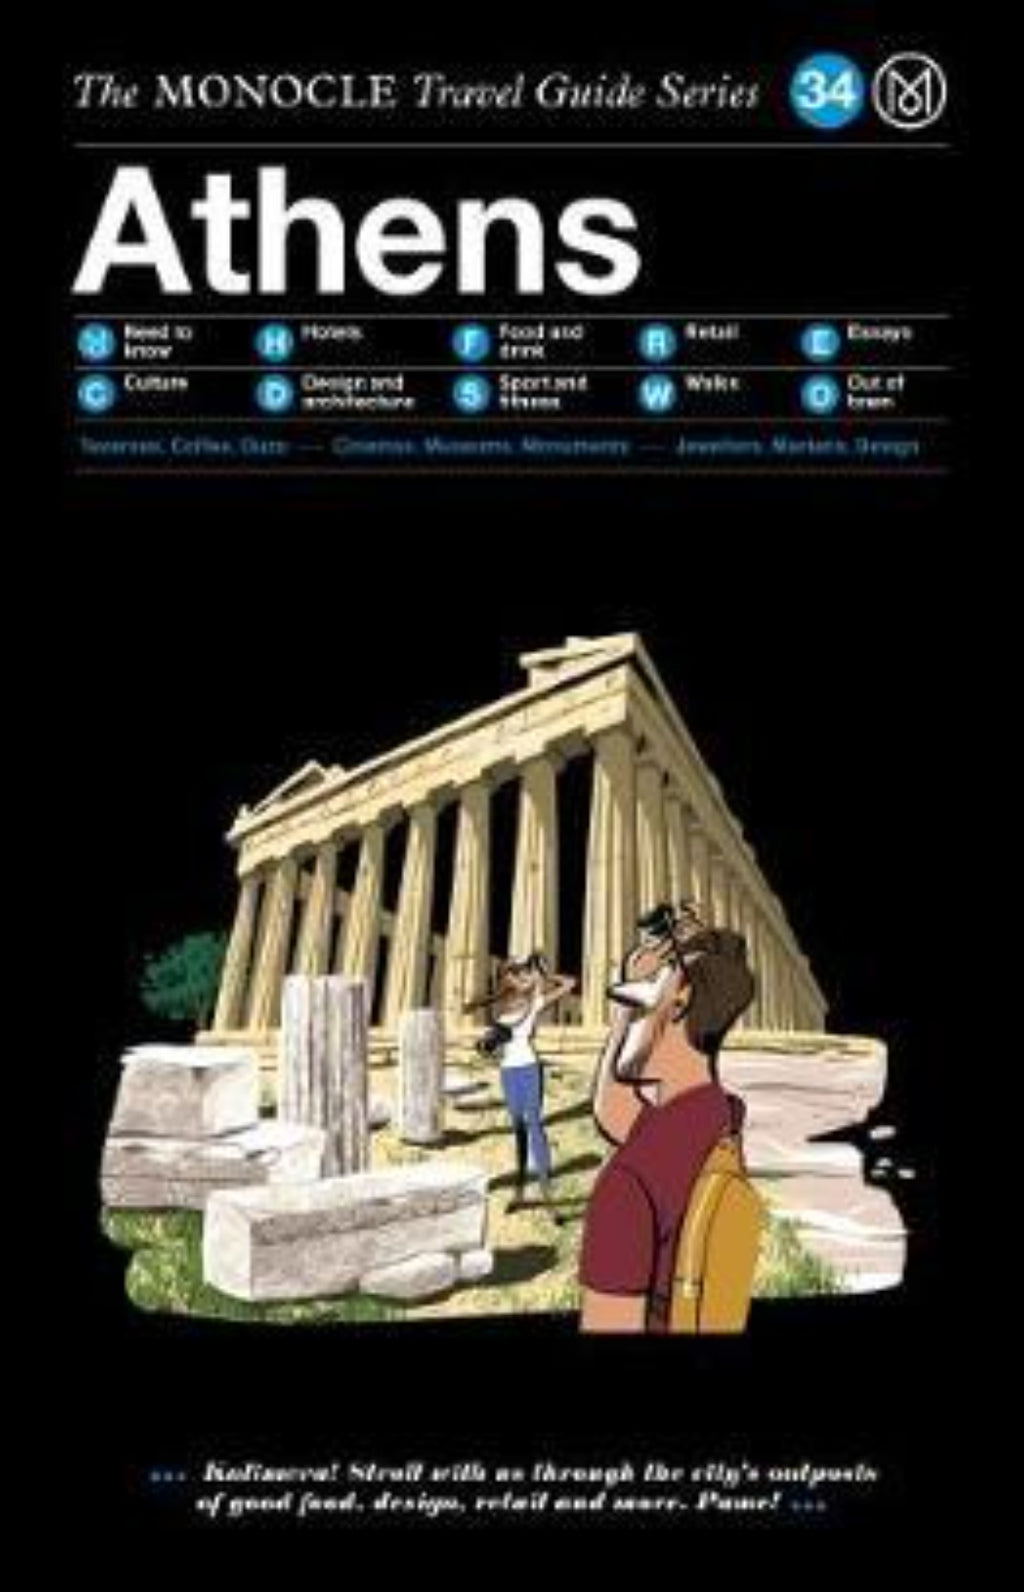 Athens - The Monocle Travel Guide Series 34